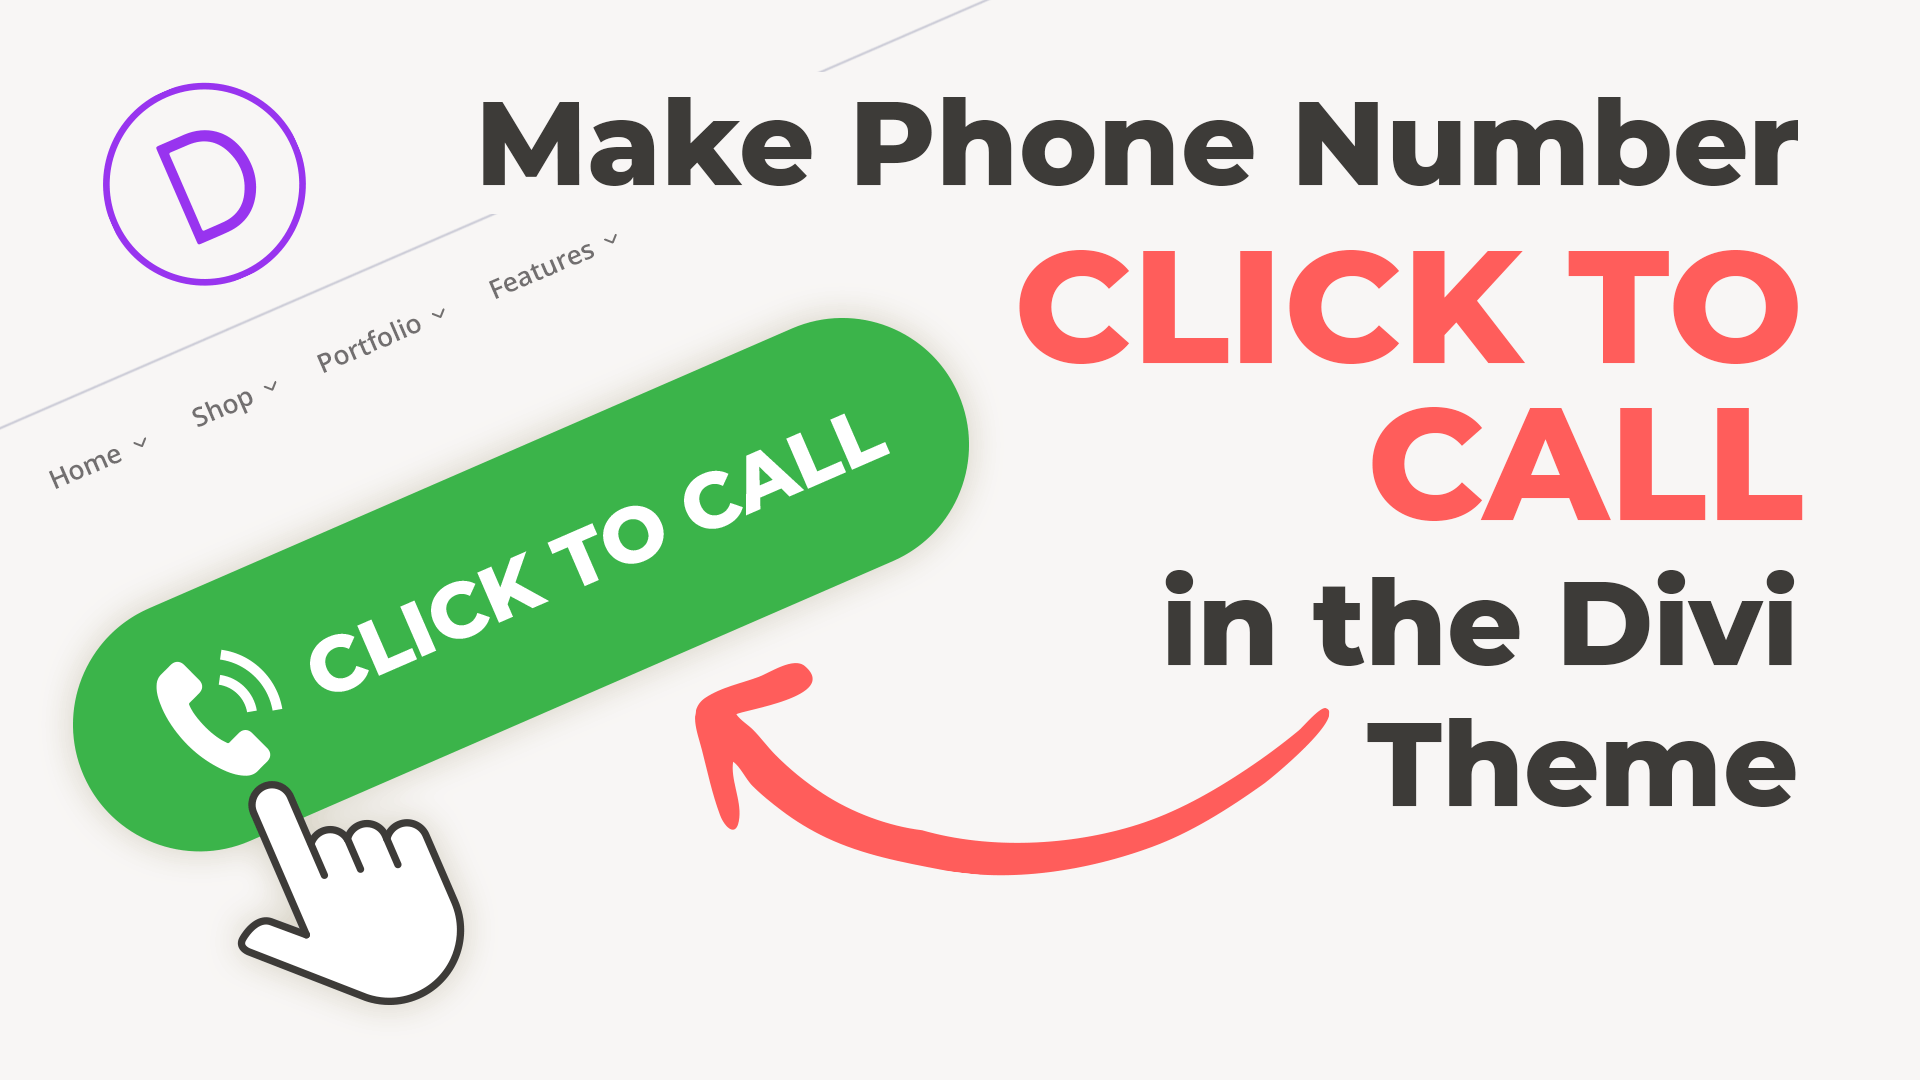 Make Phone Number Click to Call in the Divi Theme